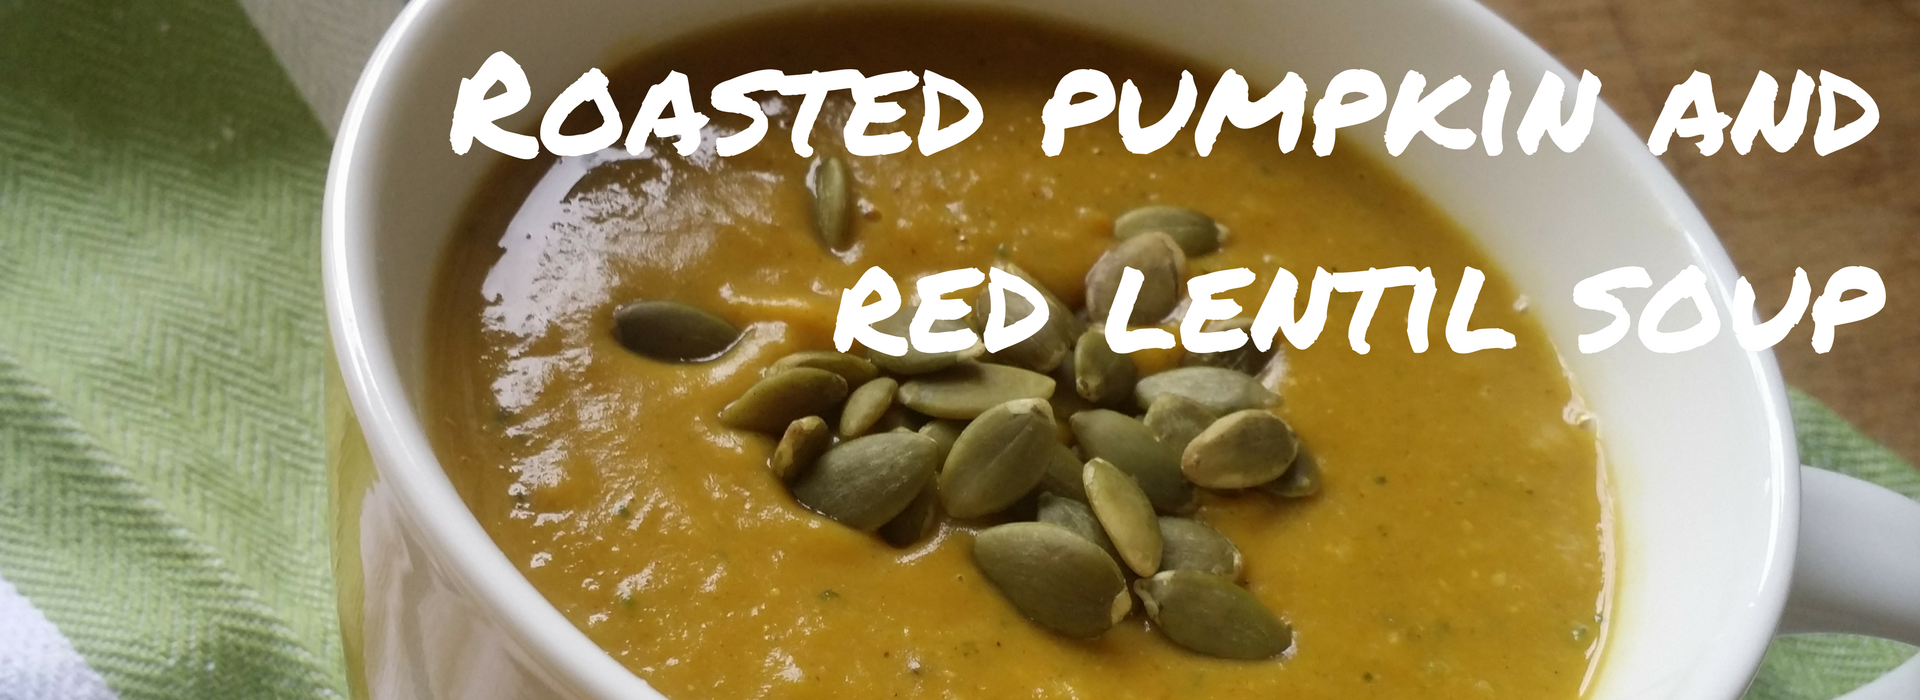 Roasted Pumpkin and Red Lentil Soup